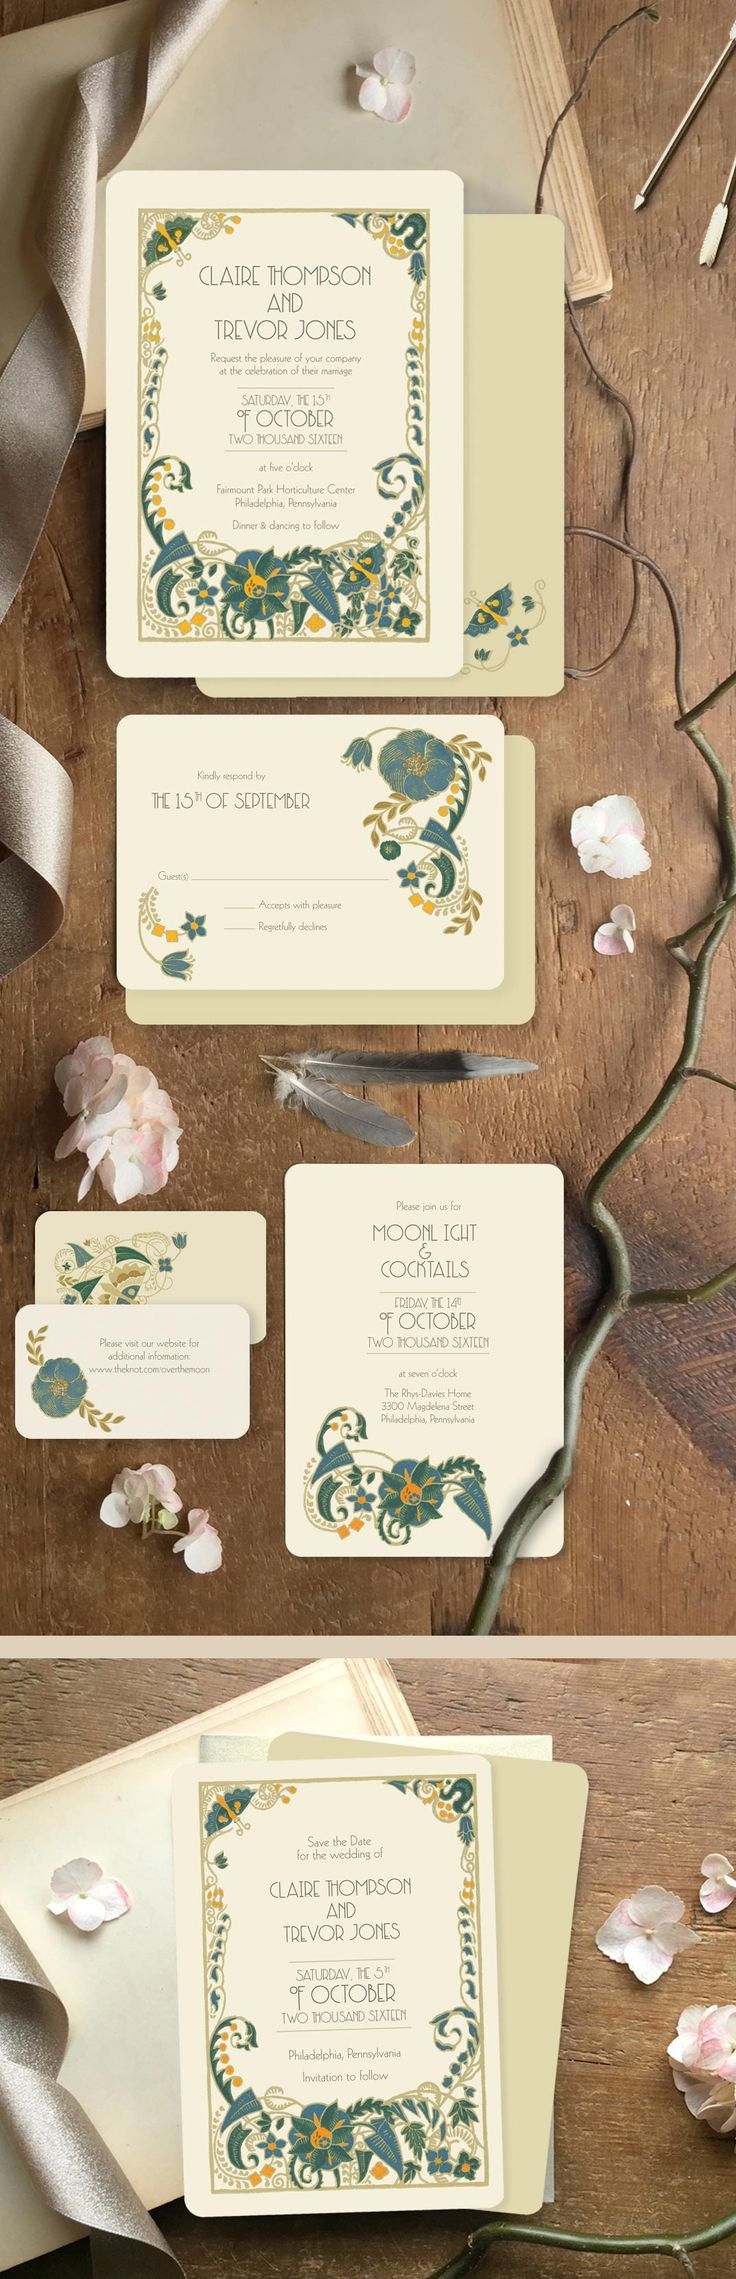 Announce your day with drama and color with this art deco floral design! These Art Deco wedding invitations are printed on the front and back and can accommodate your custom wording and wedding colors. From GoGoSnap Wedding Invitations.  https://www.etsy.com/listing/224707098/art-deco-wedding-invitation-wedding?ref=shop_home_feat_1